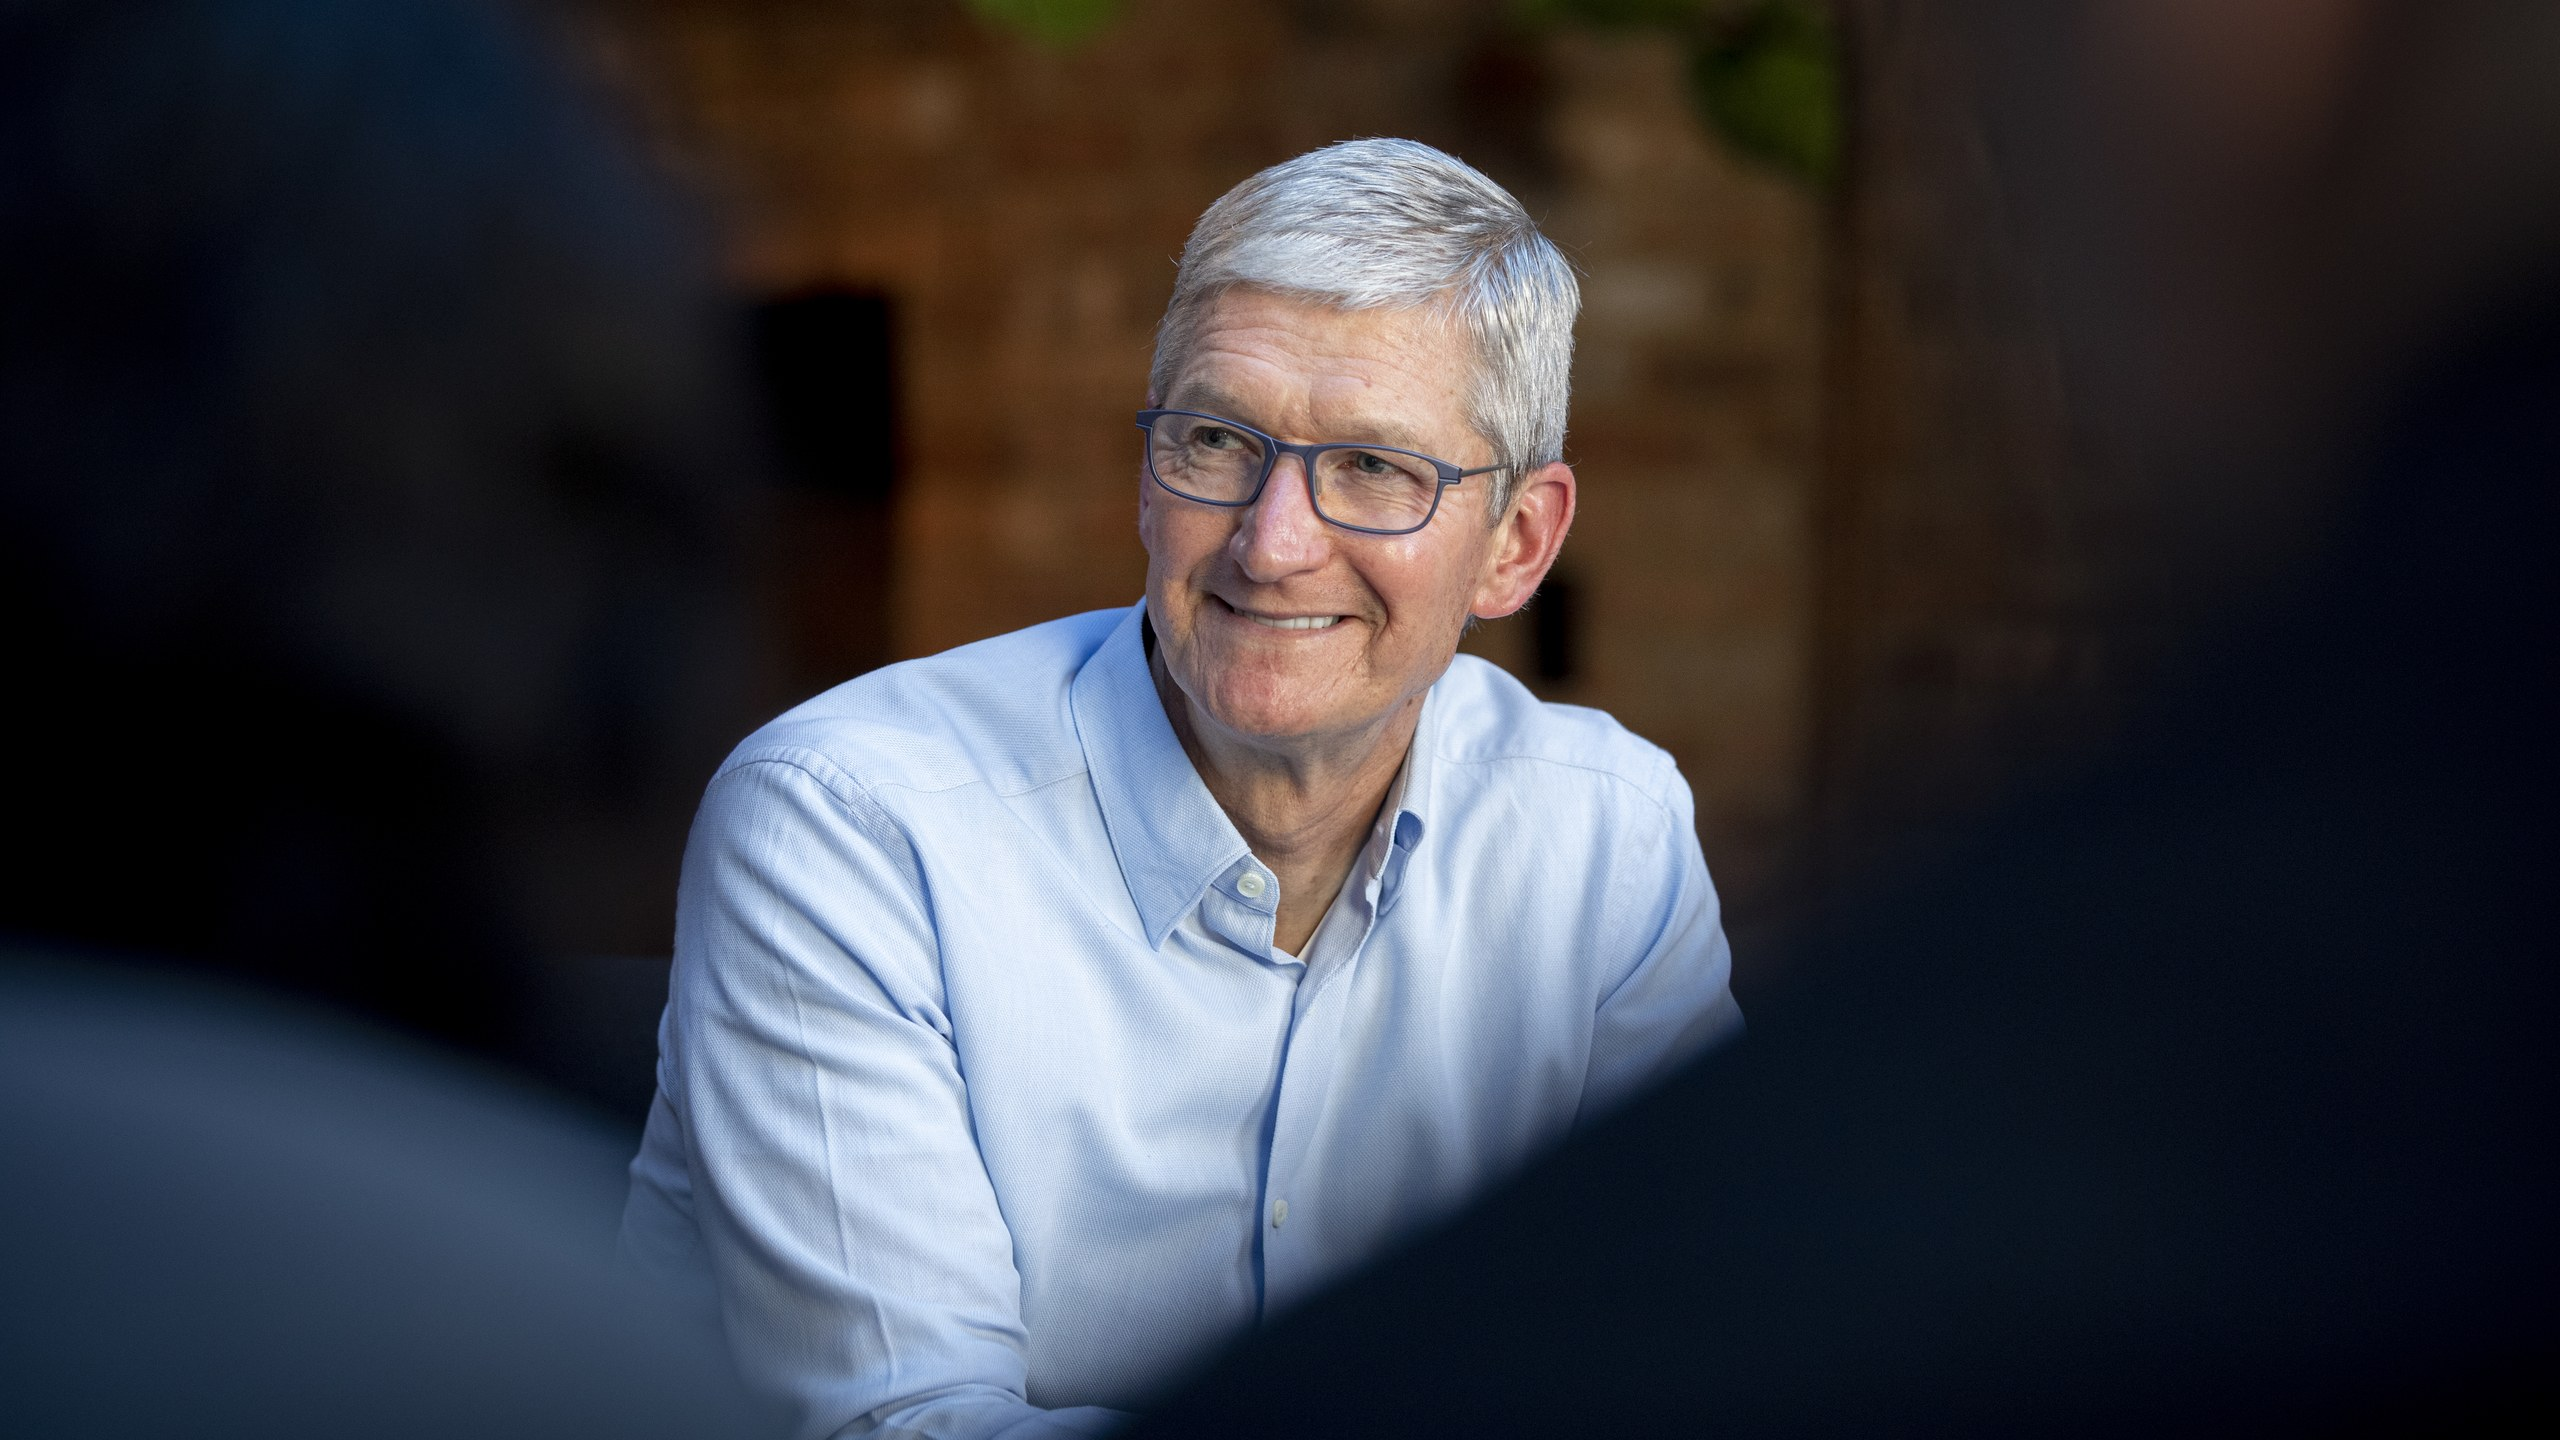 Apple Ceo Tax Overhauls